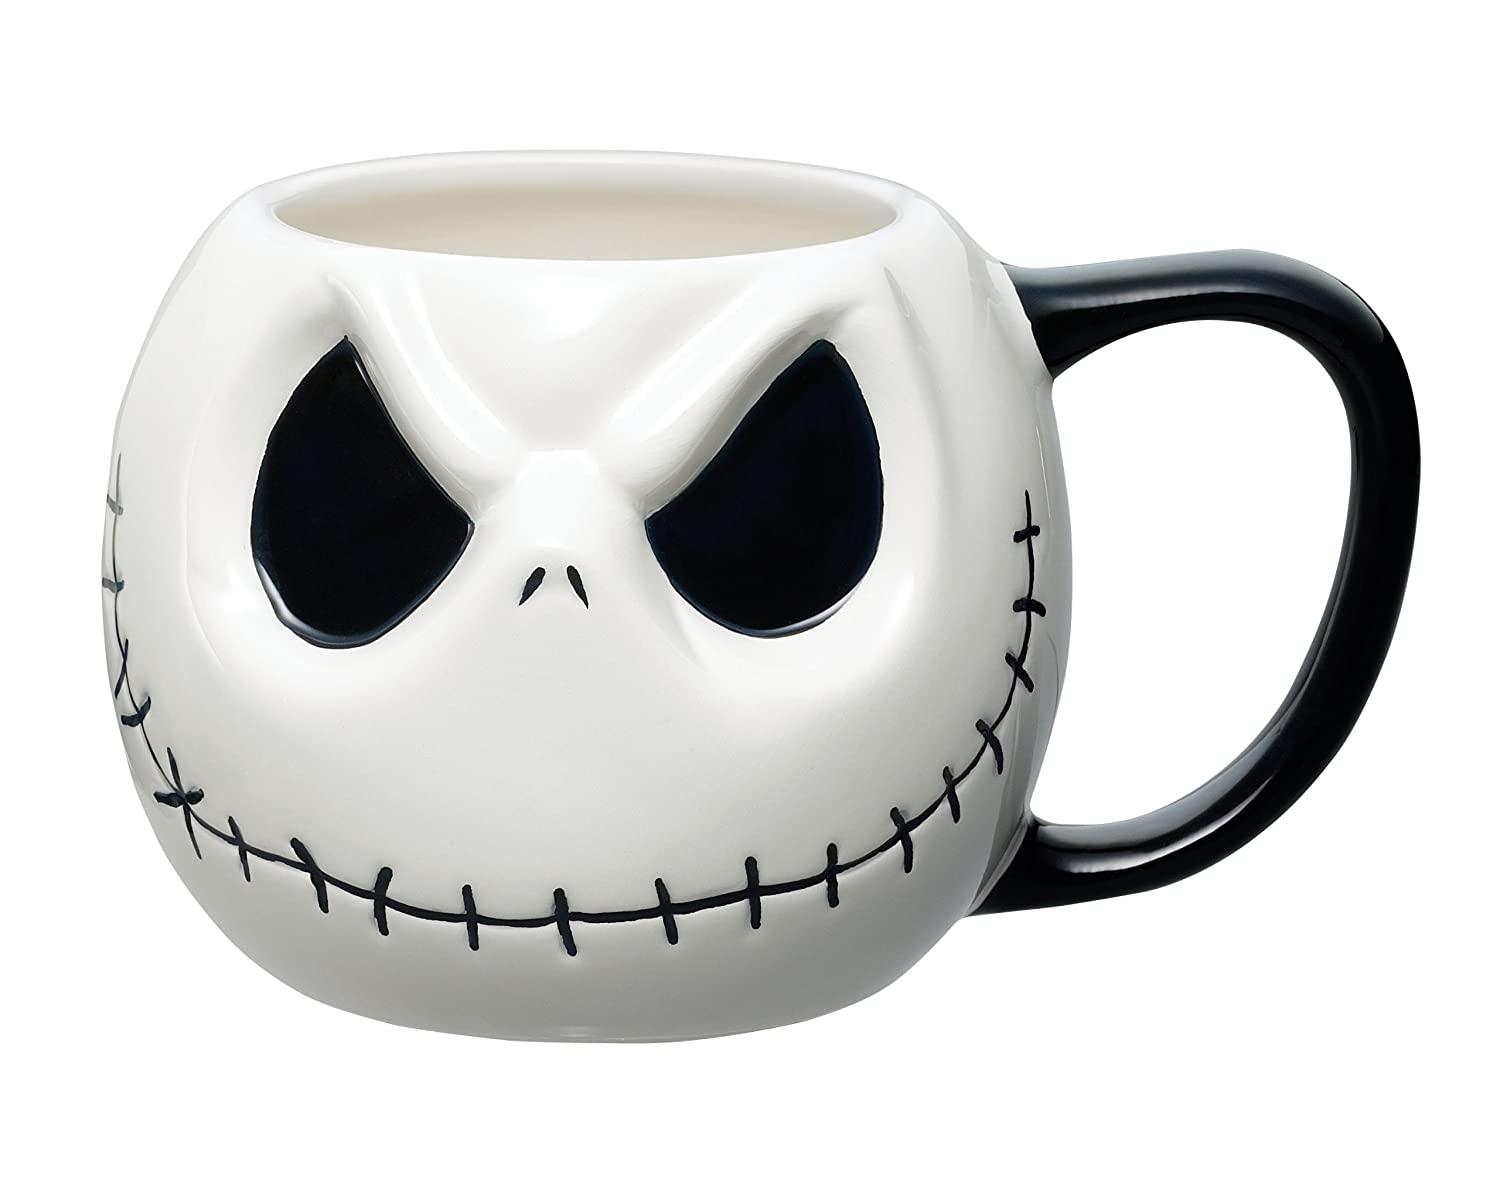 Disney Jack Skellington Mug Monogram International 26816 Accessory Consumer Accessories